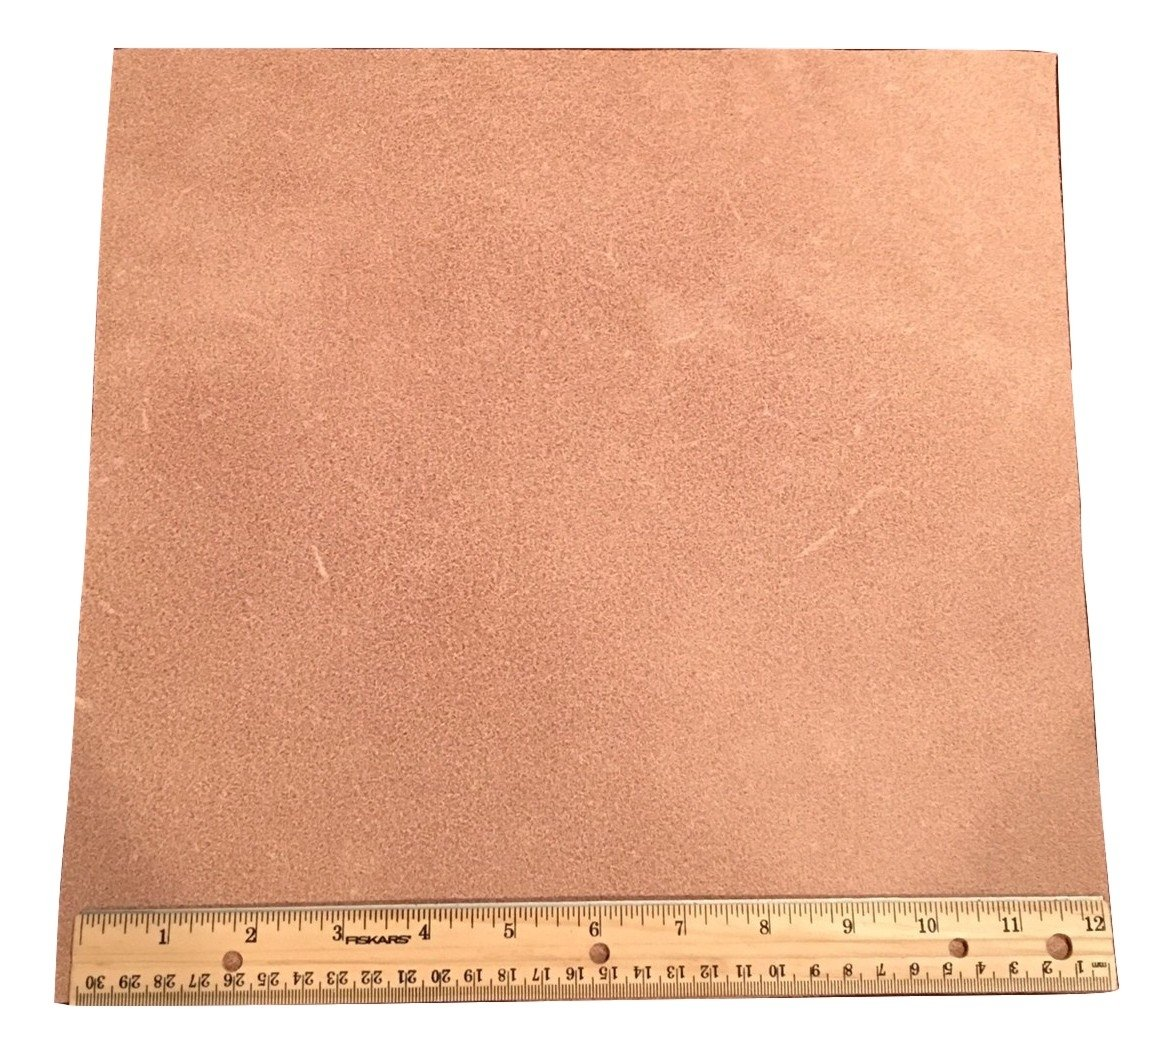 Leather Side Piece Veg Tan Split Medium Weight 12 X 12 Inches 1 Square Foot